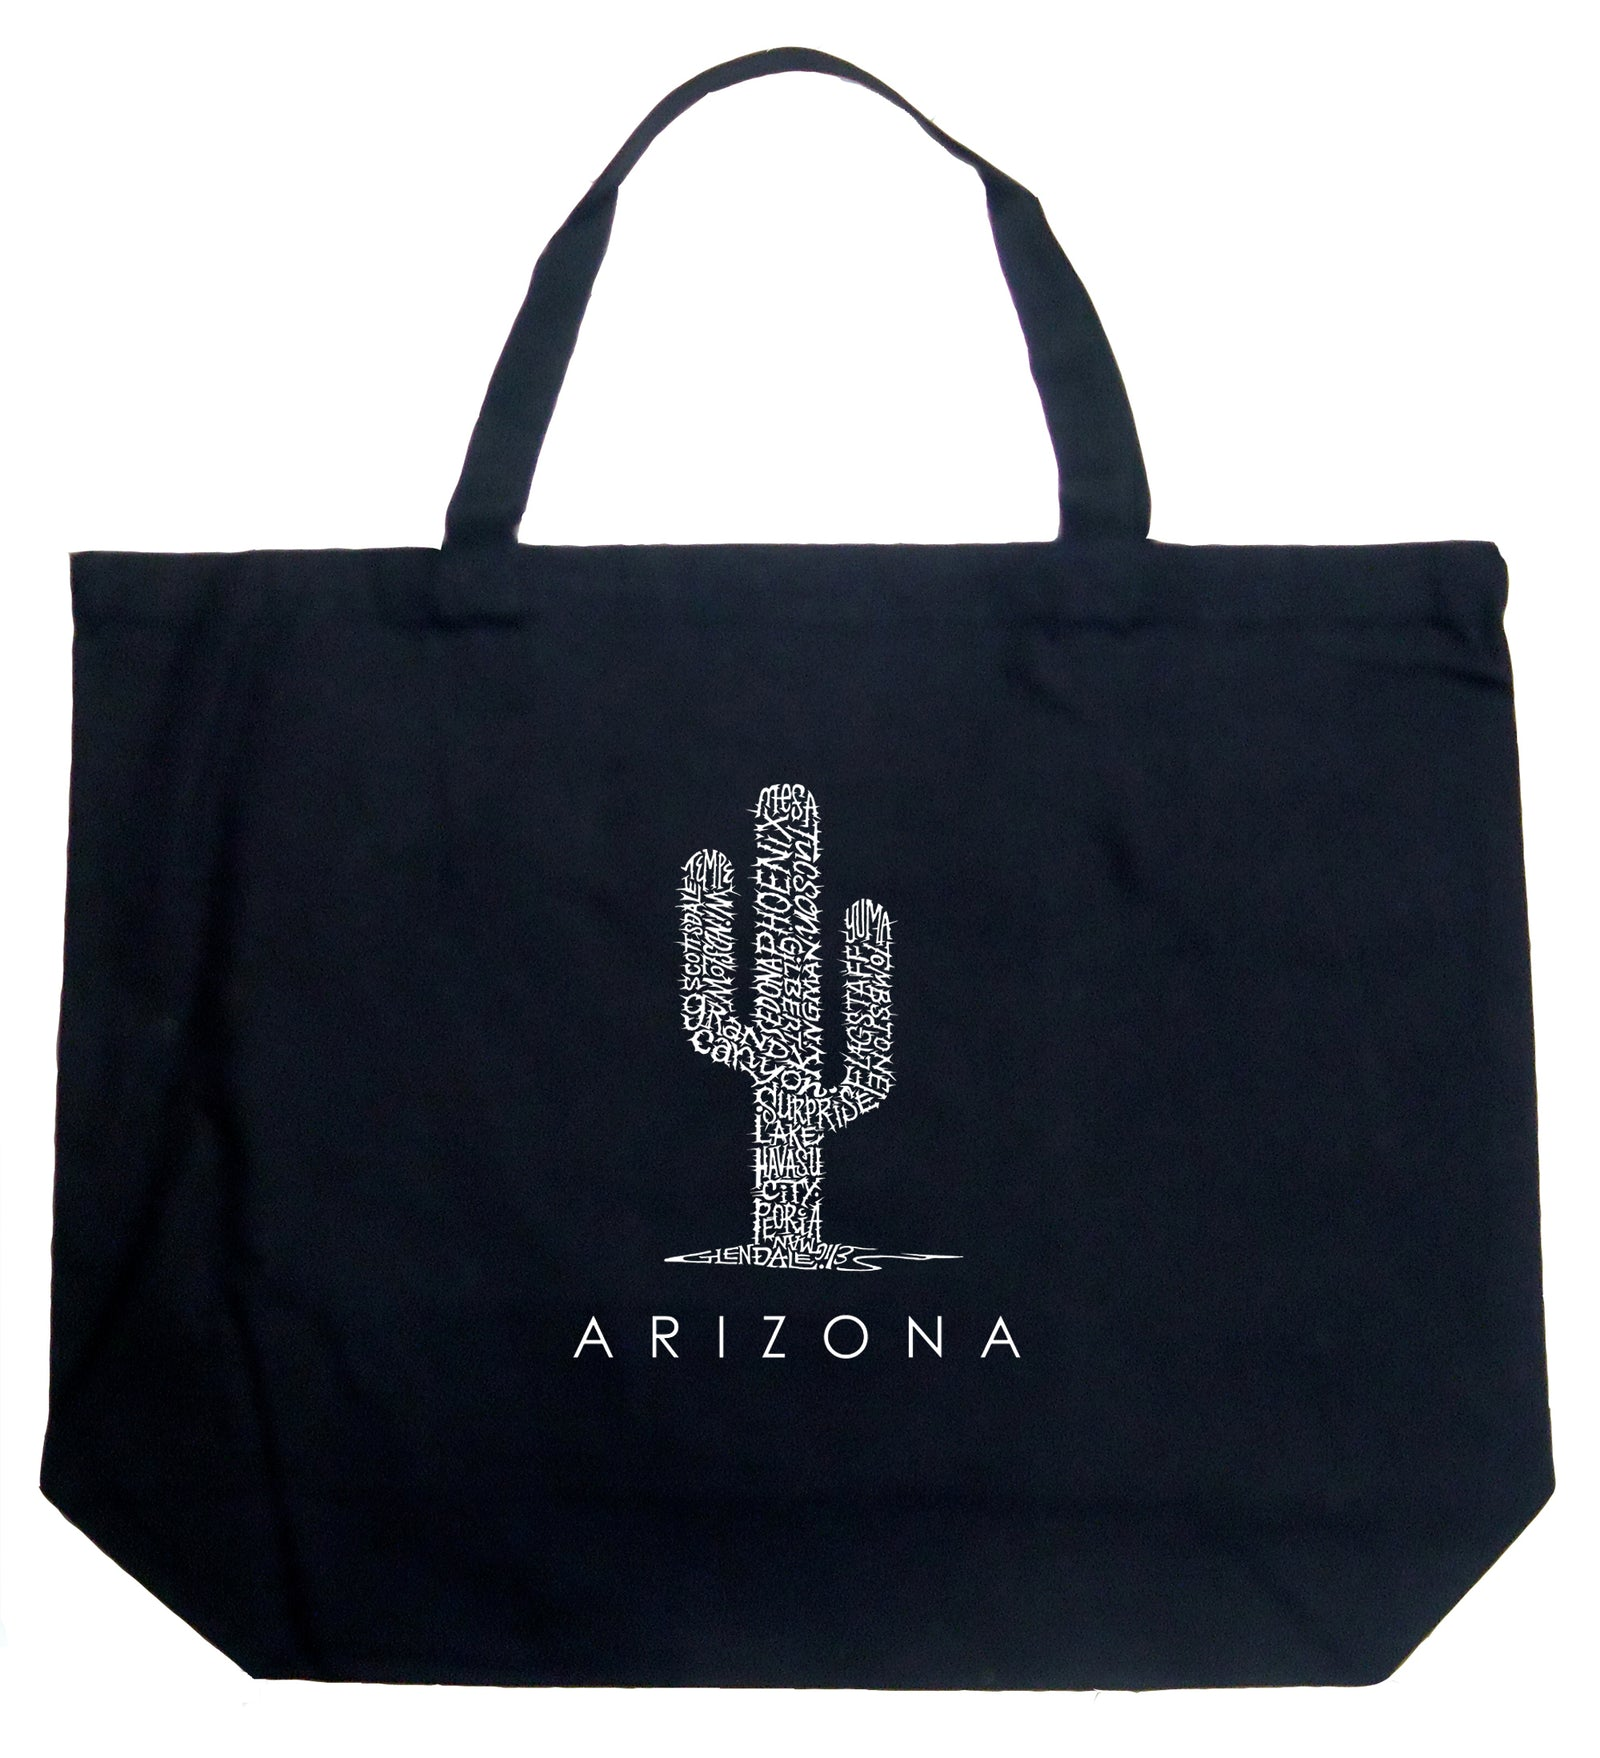 Los Angeles Pop Art Large Tote Bag - Arizona Cities